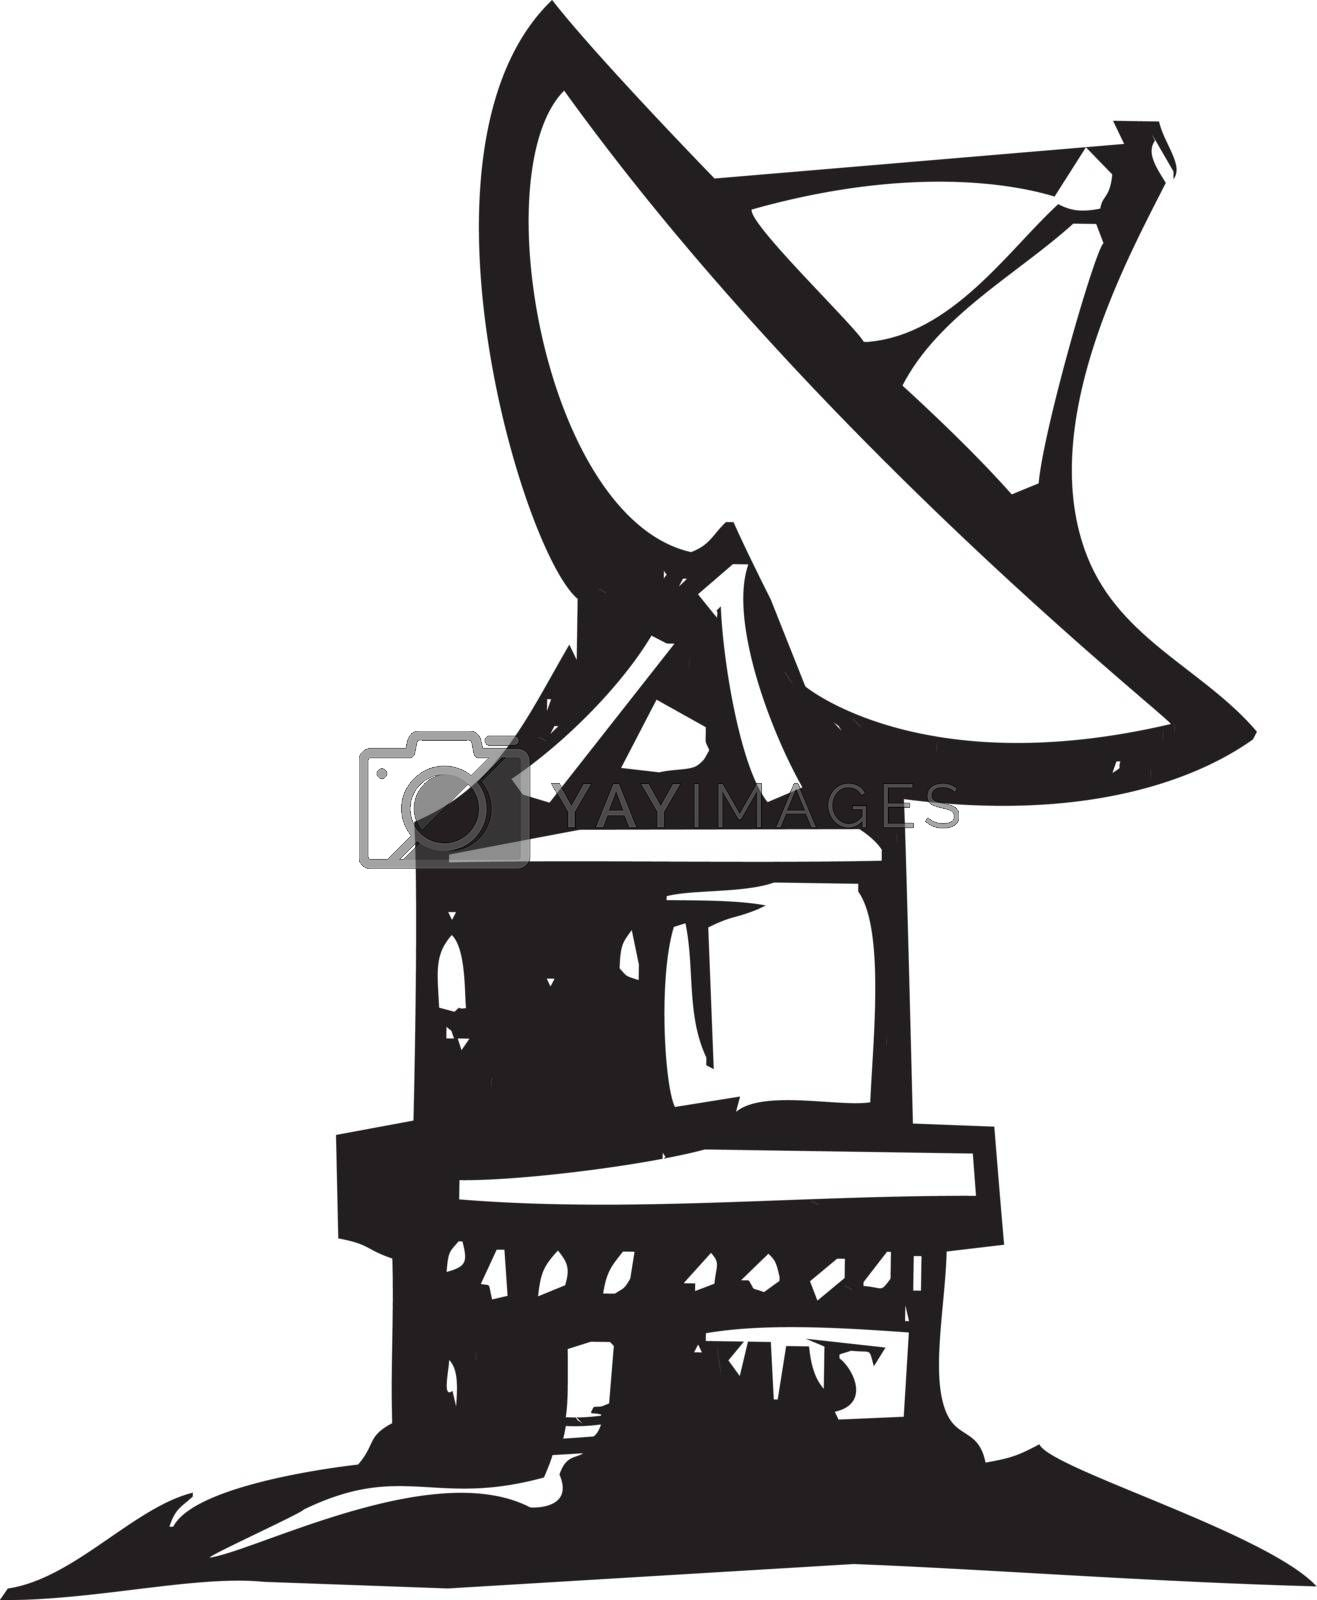 Woodcut style expressionist radio dish telescope pointing at that sky.